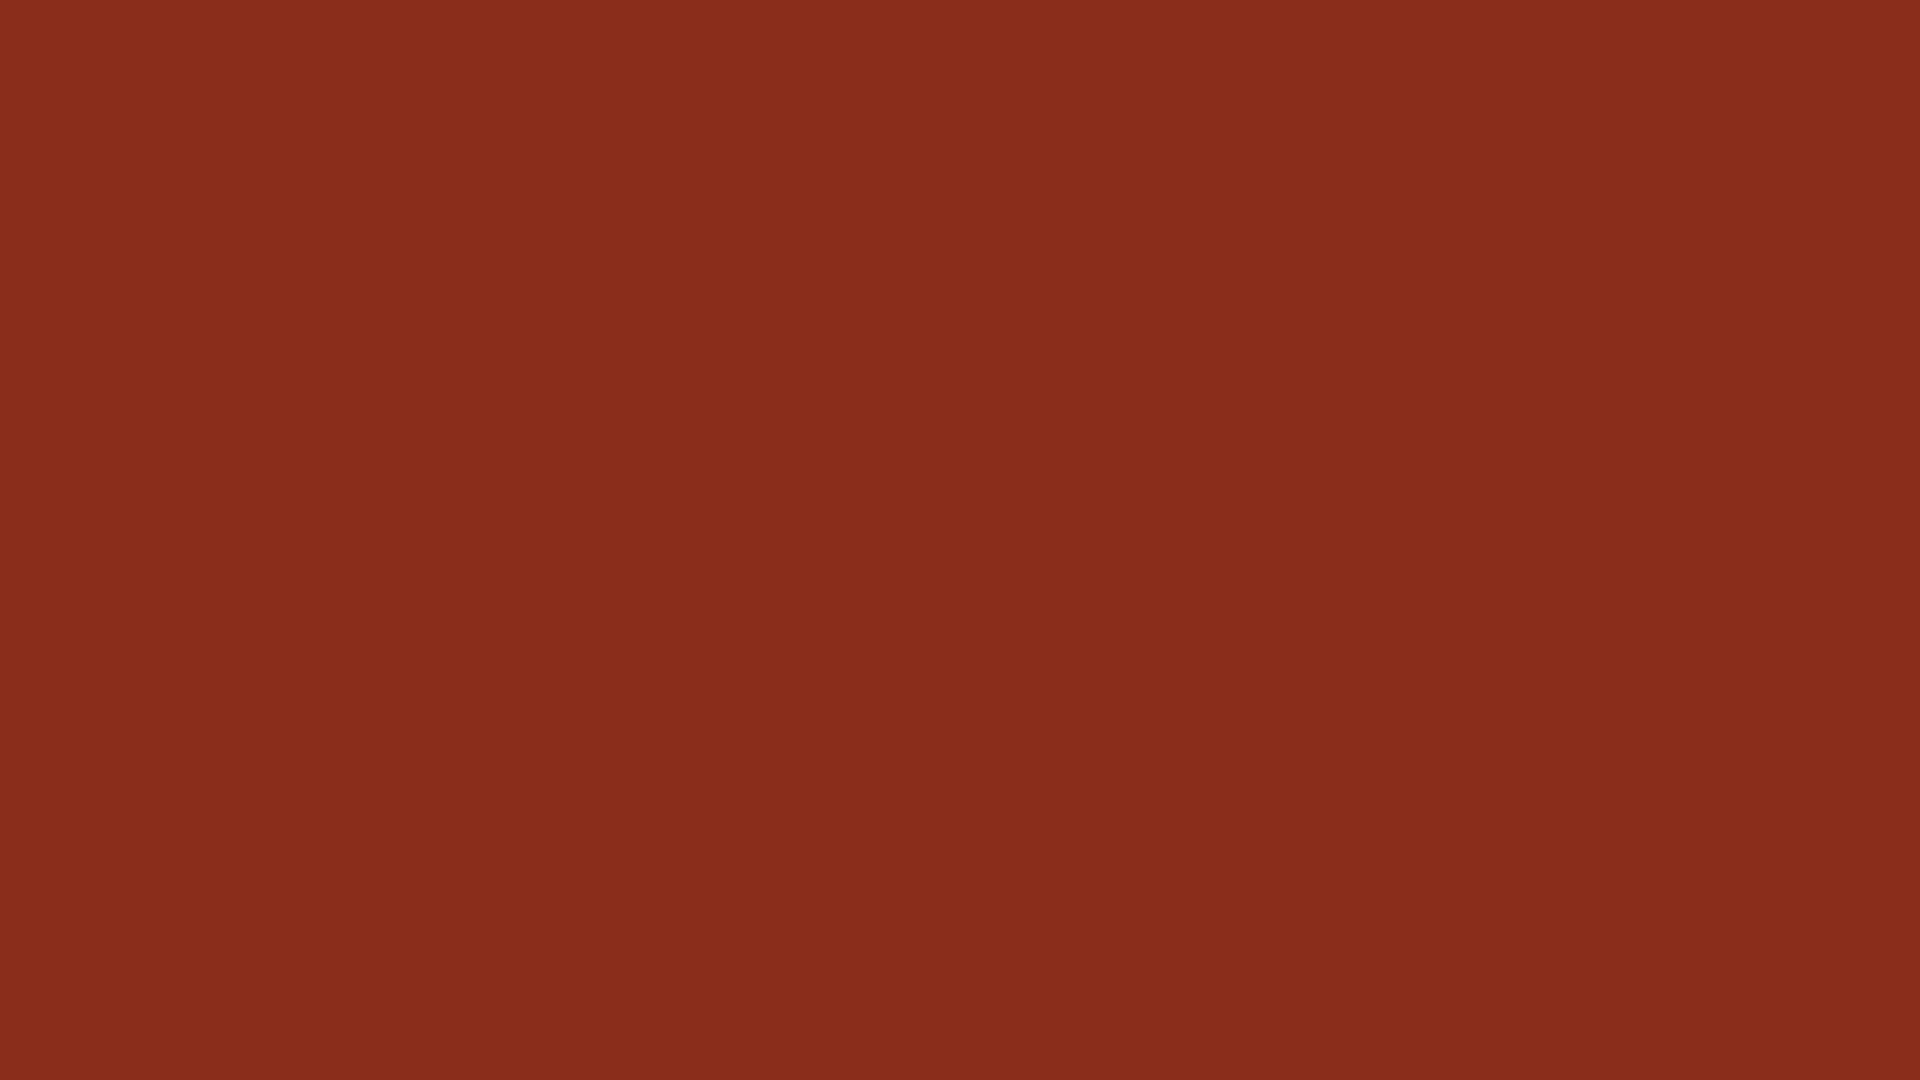 1920x1080 Sienna Solid Color Background